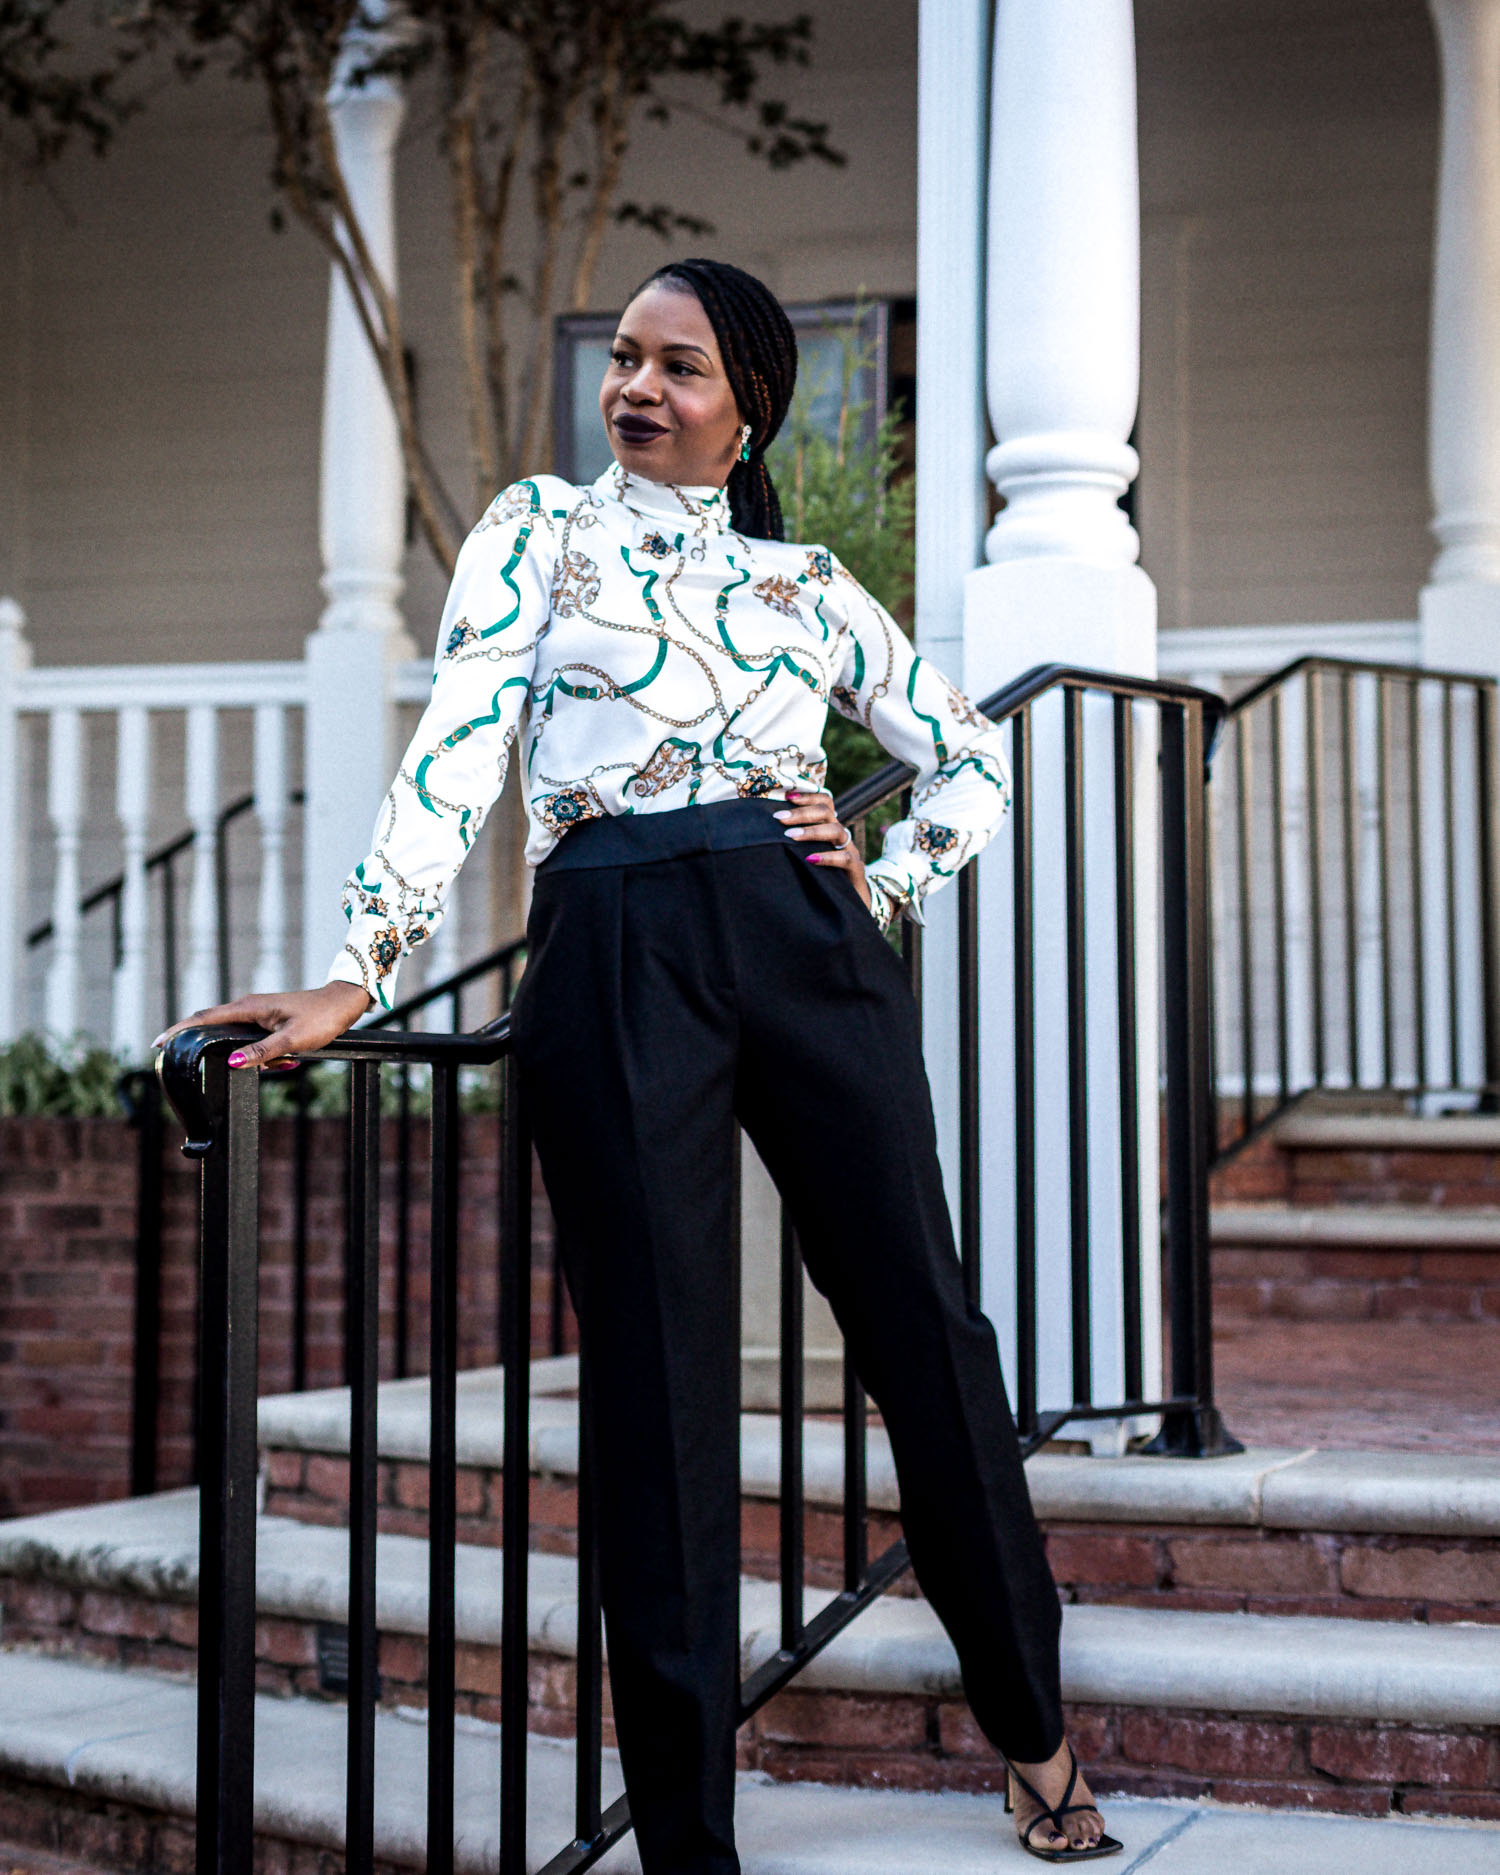 atlanta blogger wearing white house black silk high neck blouse, tuxedo pants, bottega stretch sandals, what to wear to an office christmas party, what to wear to a holiday party, the perfect holiday party outfit for all body types, how to style black pants for a holiday party